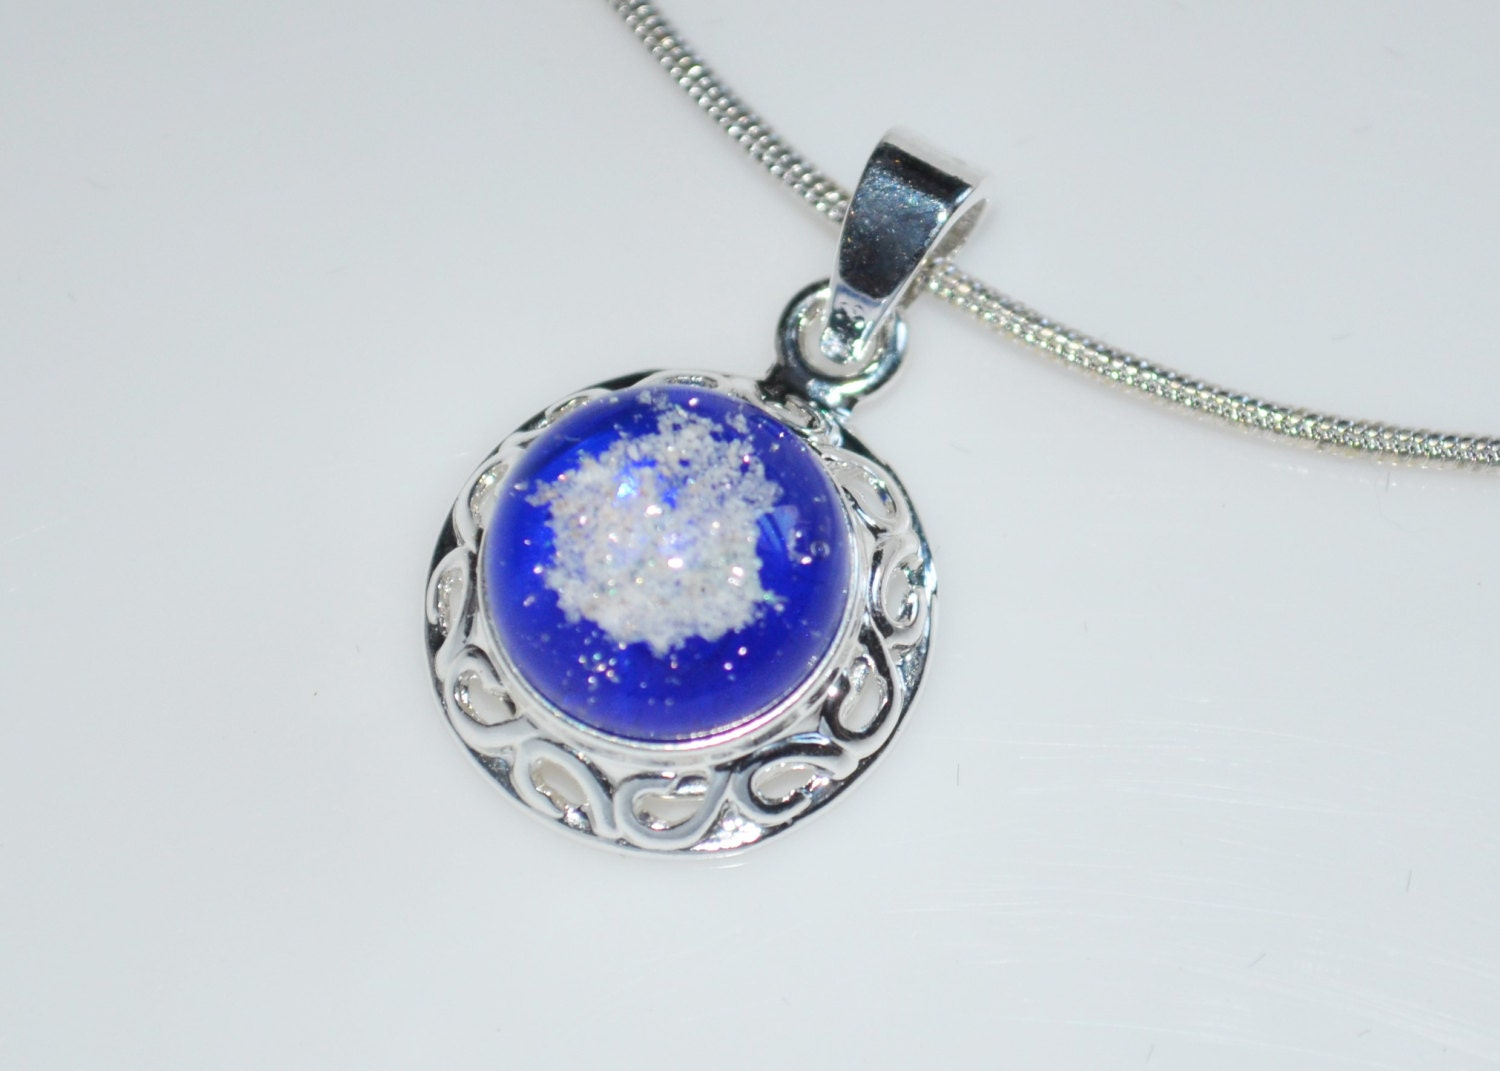 jewelry made from ashes pet cremation jewelry ash necklace ashes by 2313